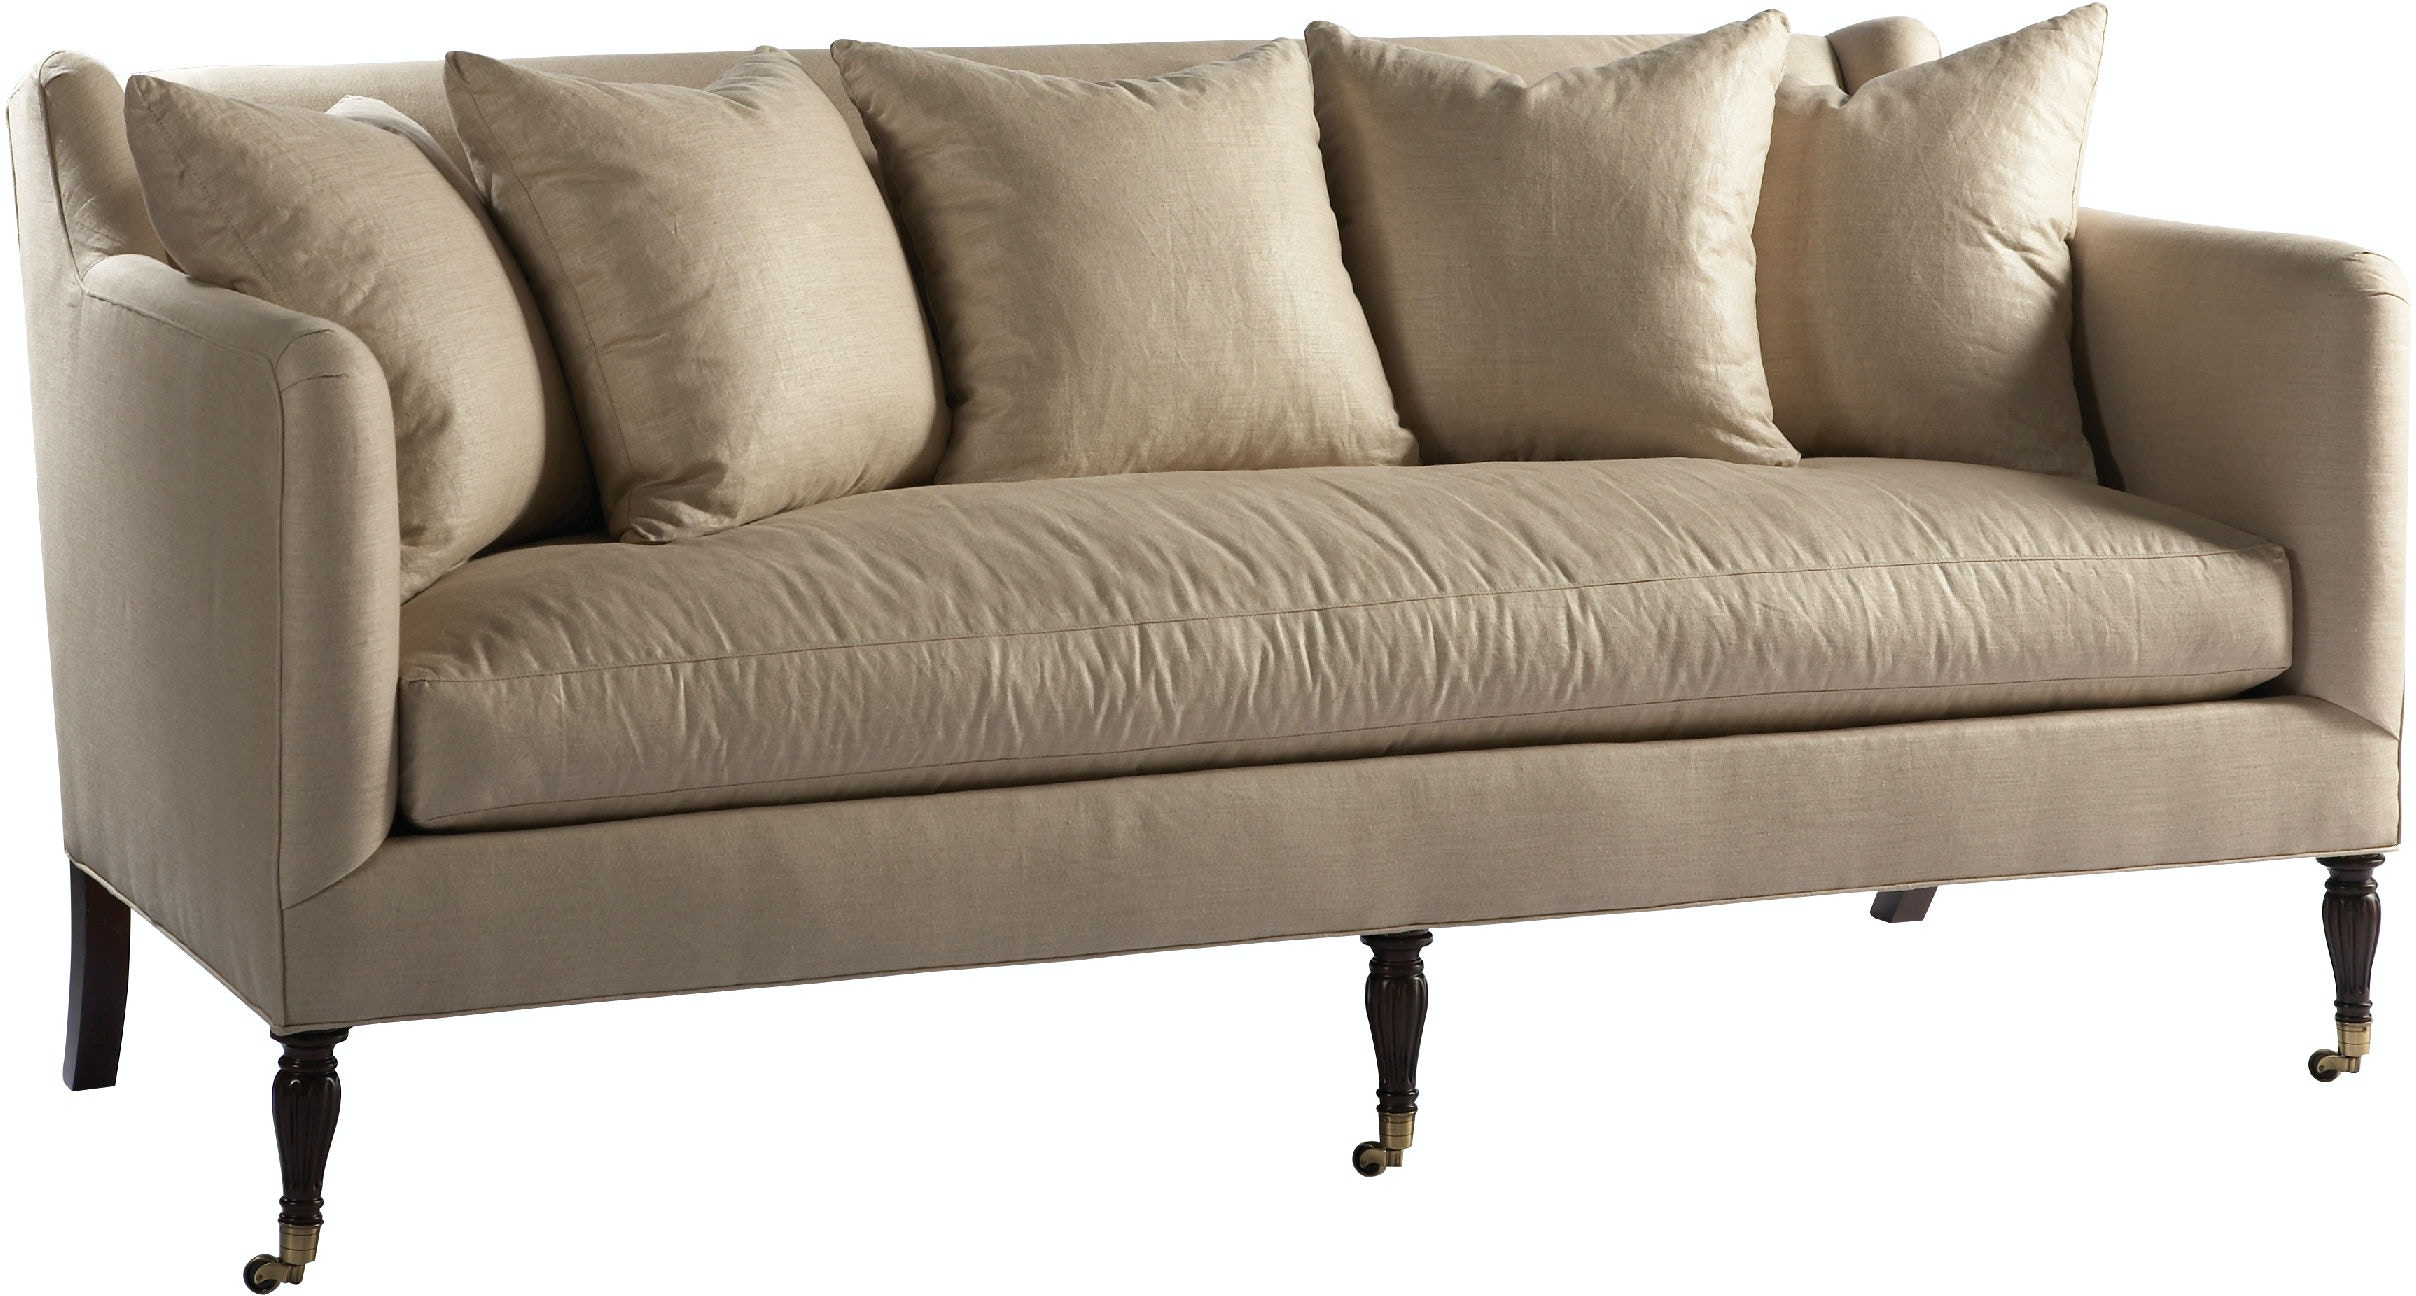 Lillian August For Hickory White Living Room London Sofa LA7085S At Gehman  & Co